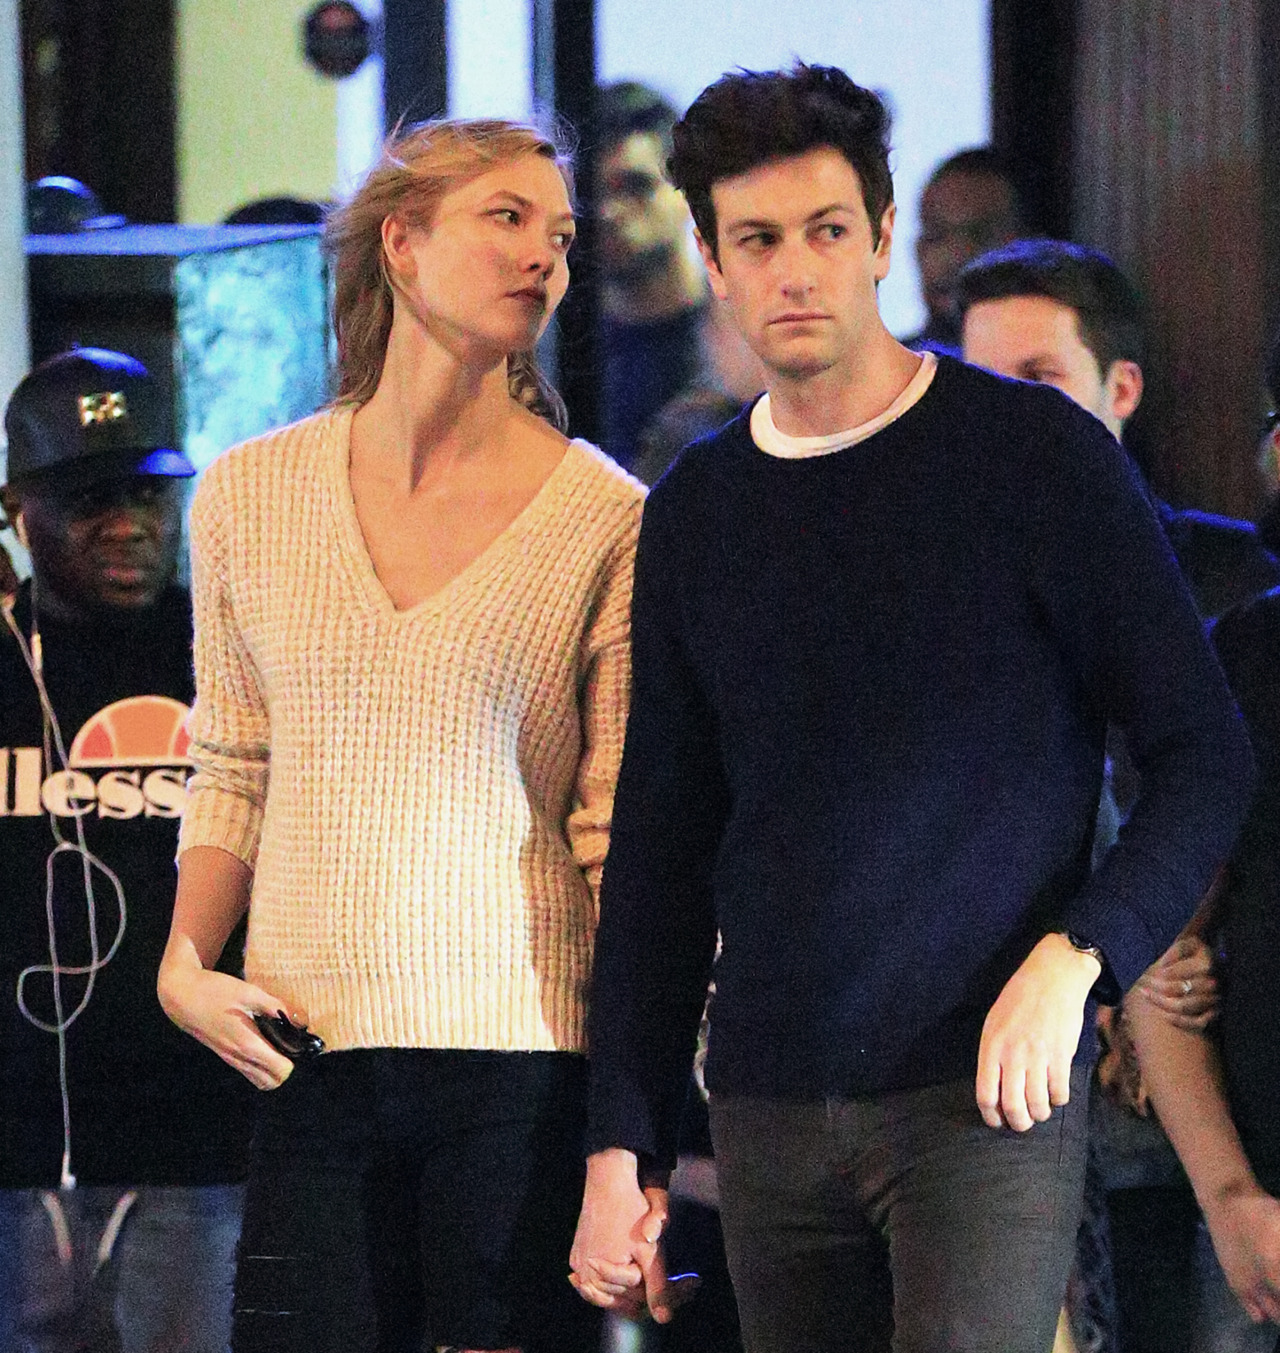 Karlie Kloss Has a Date Night Out in New York City